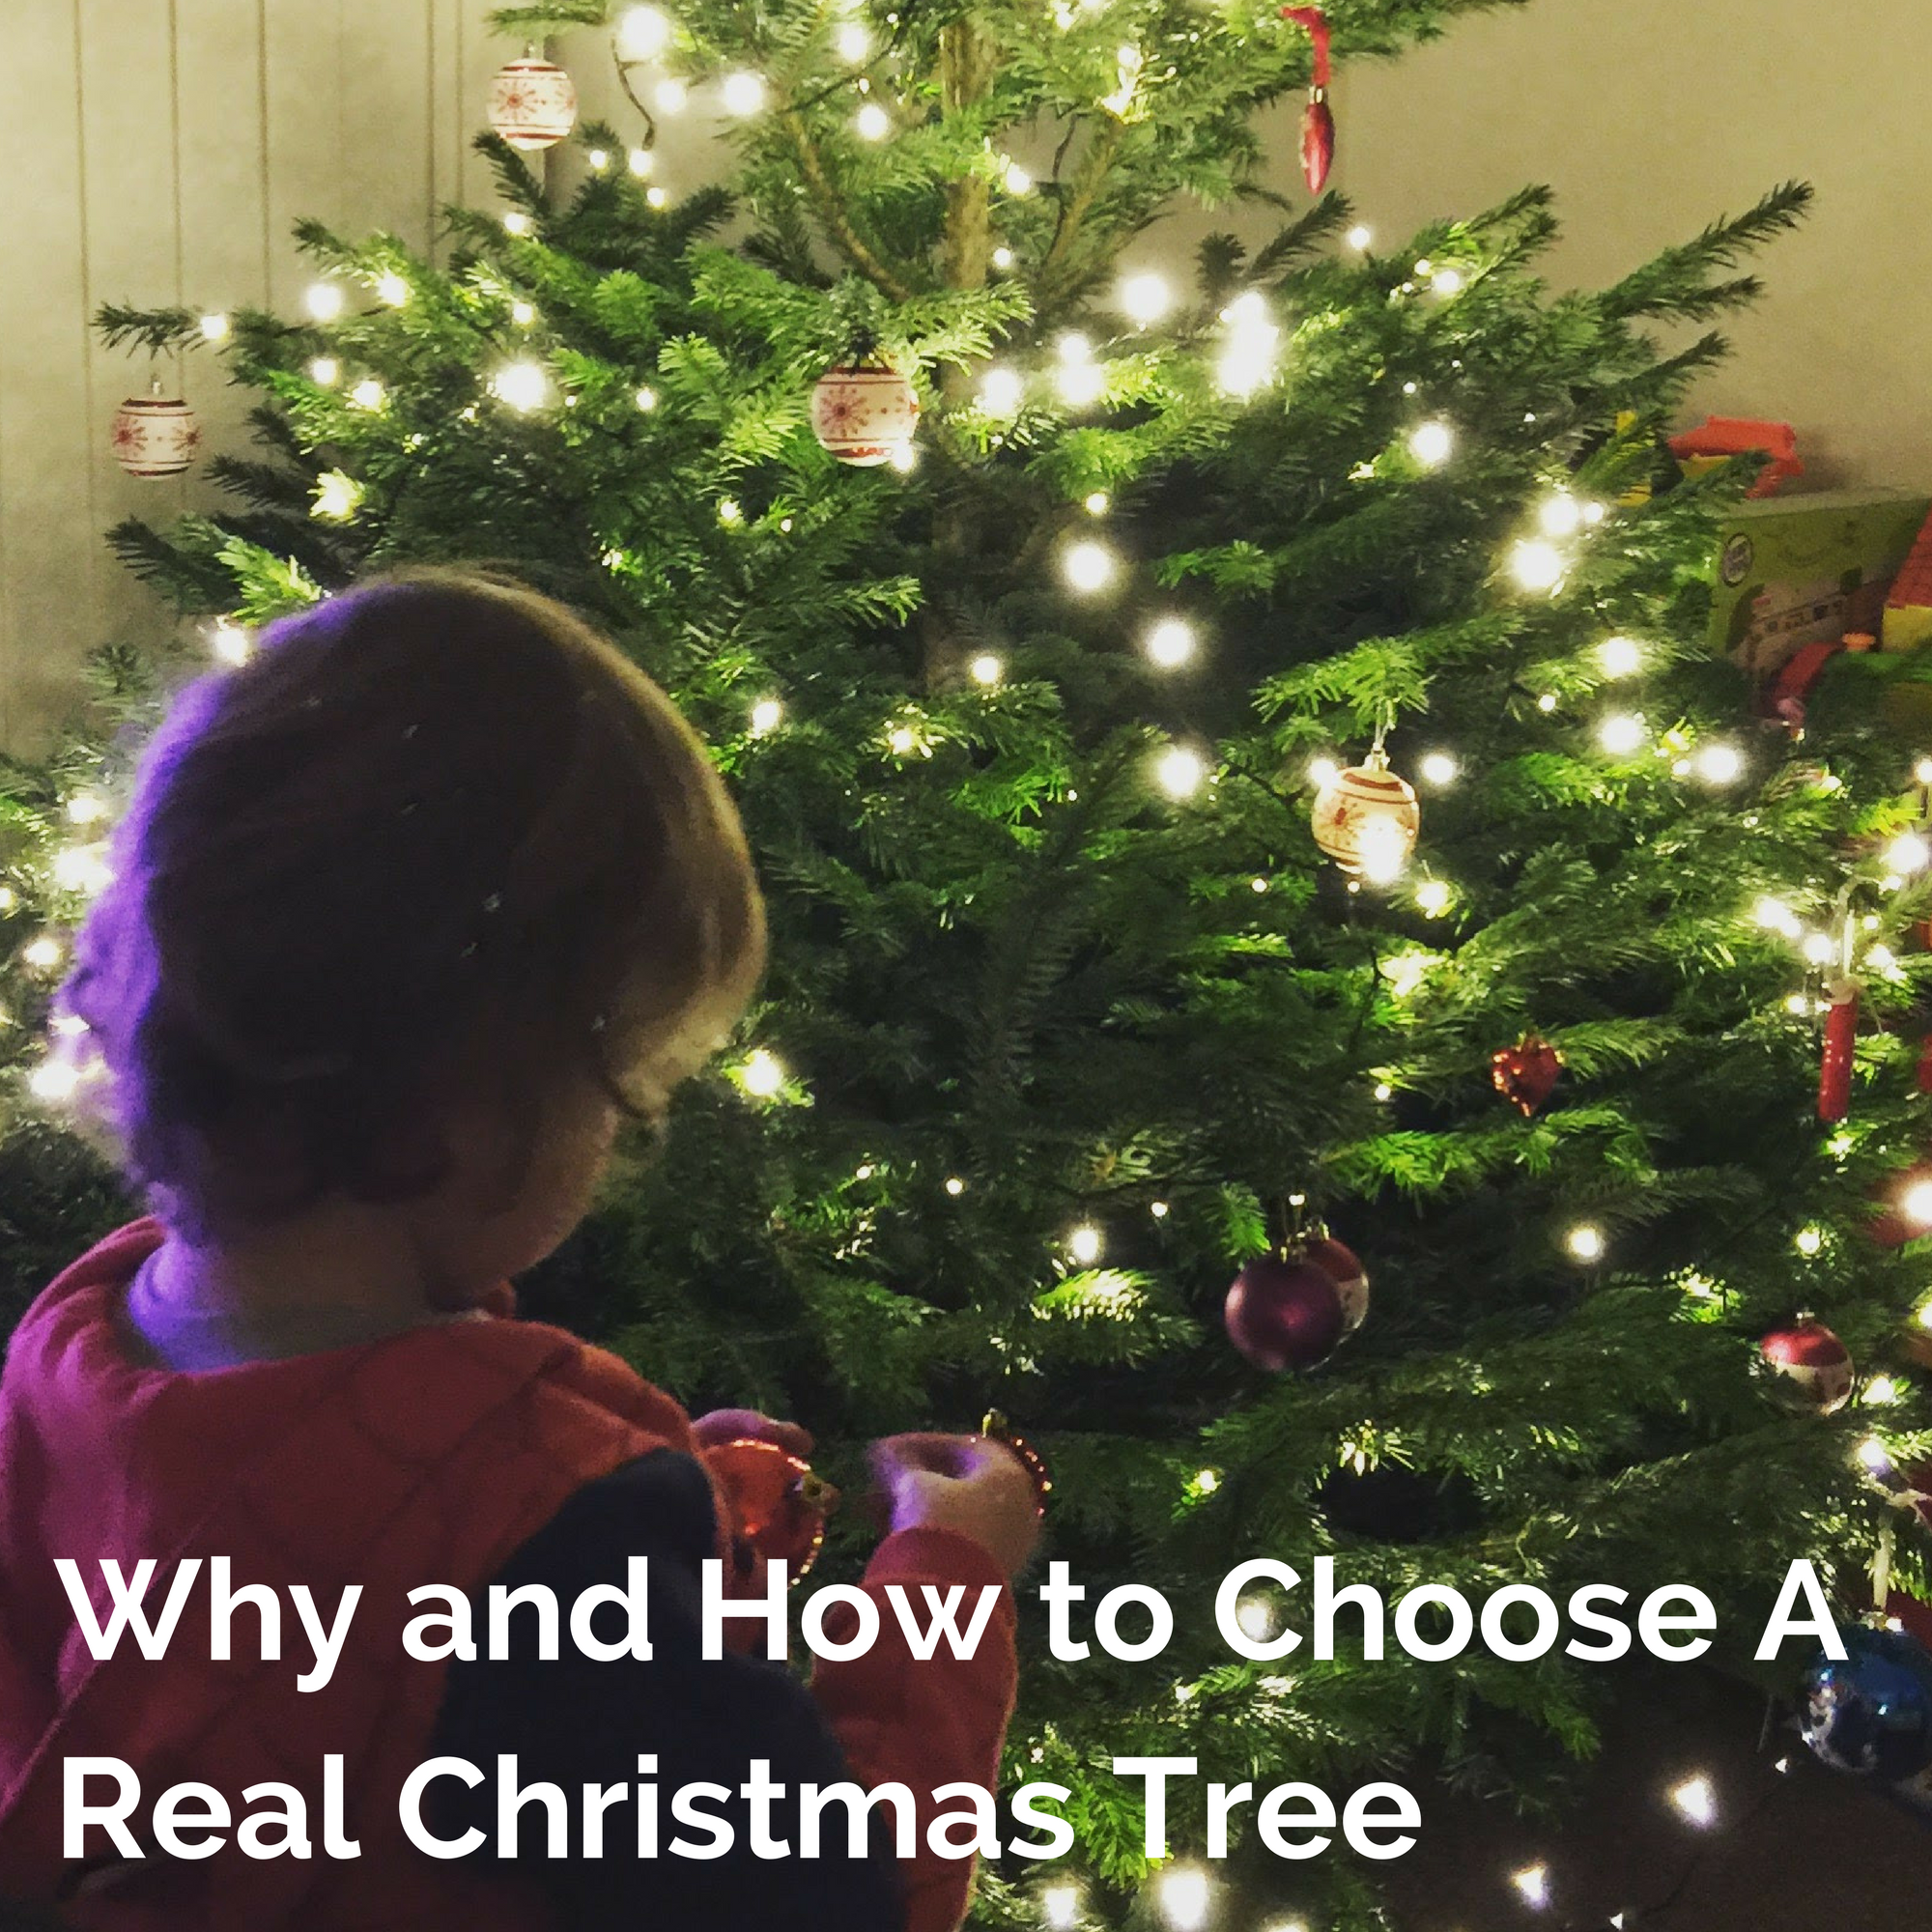 Why and How to Choose A Real Christmas Tree